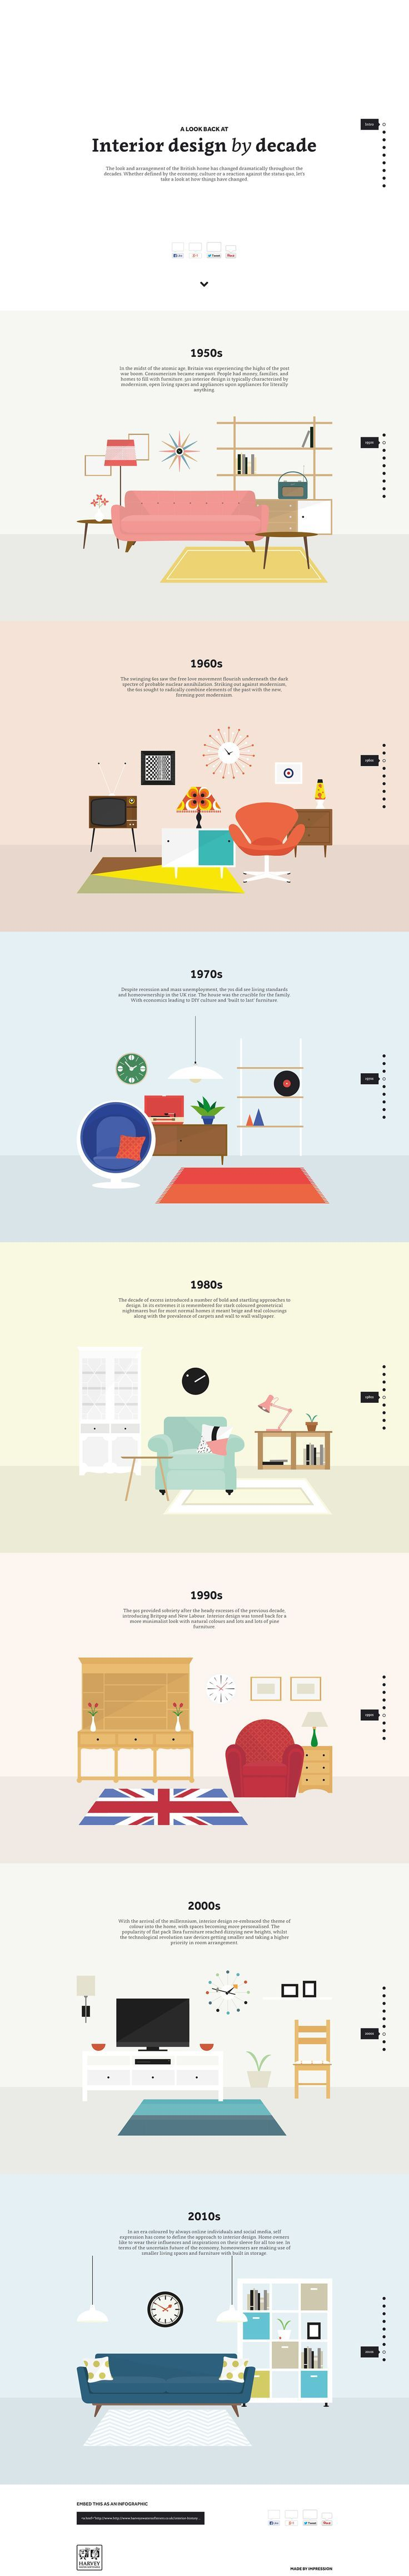 Lovely informational one pager showcasing how interior design has changed over the previous decades. The long one page website is really well done with interactive hotspots of information overlaying the beautiful illustrations of furniture. A shout out to the responsive adaption as well, the hotspots turn into paragraphed information below the illustrations. Great job. #infographics